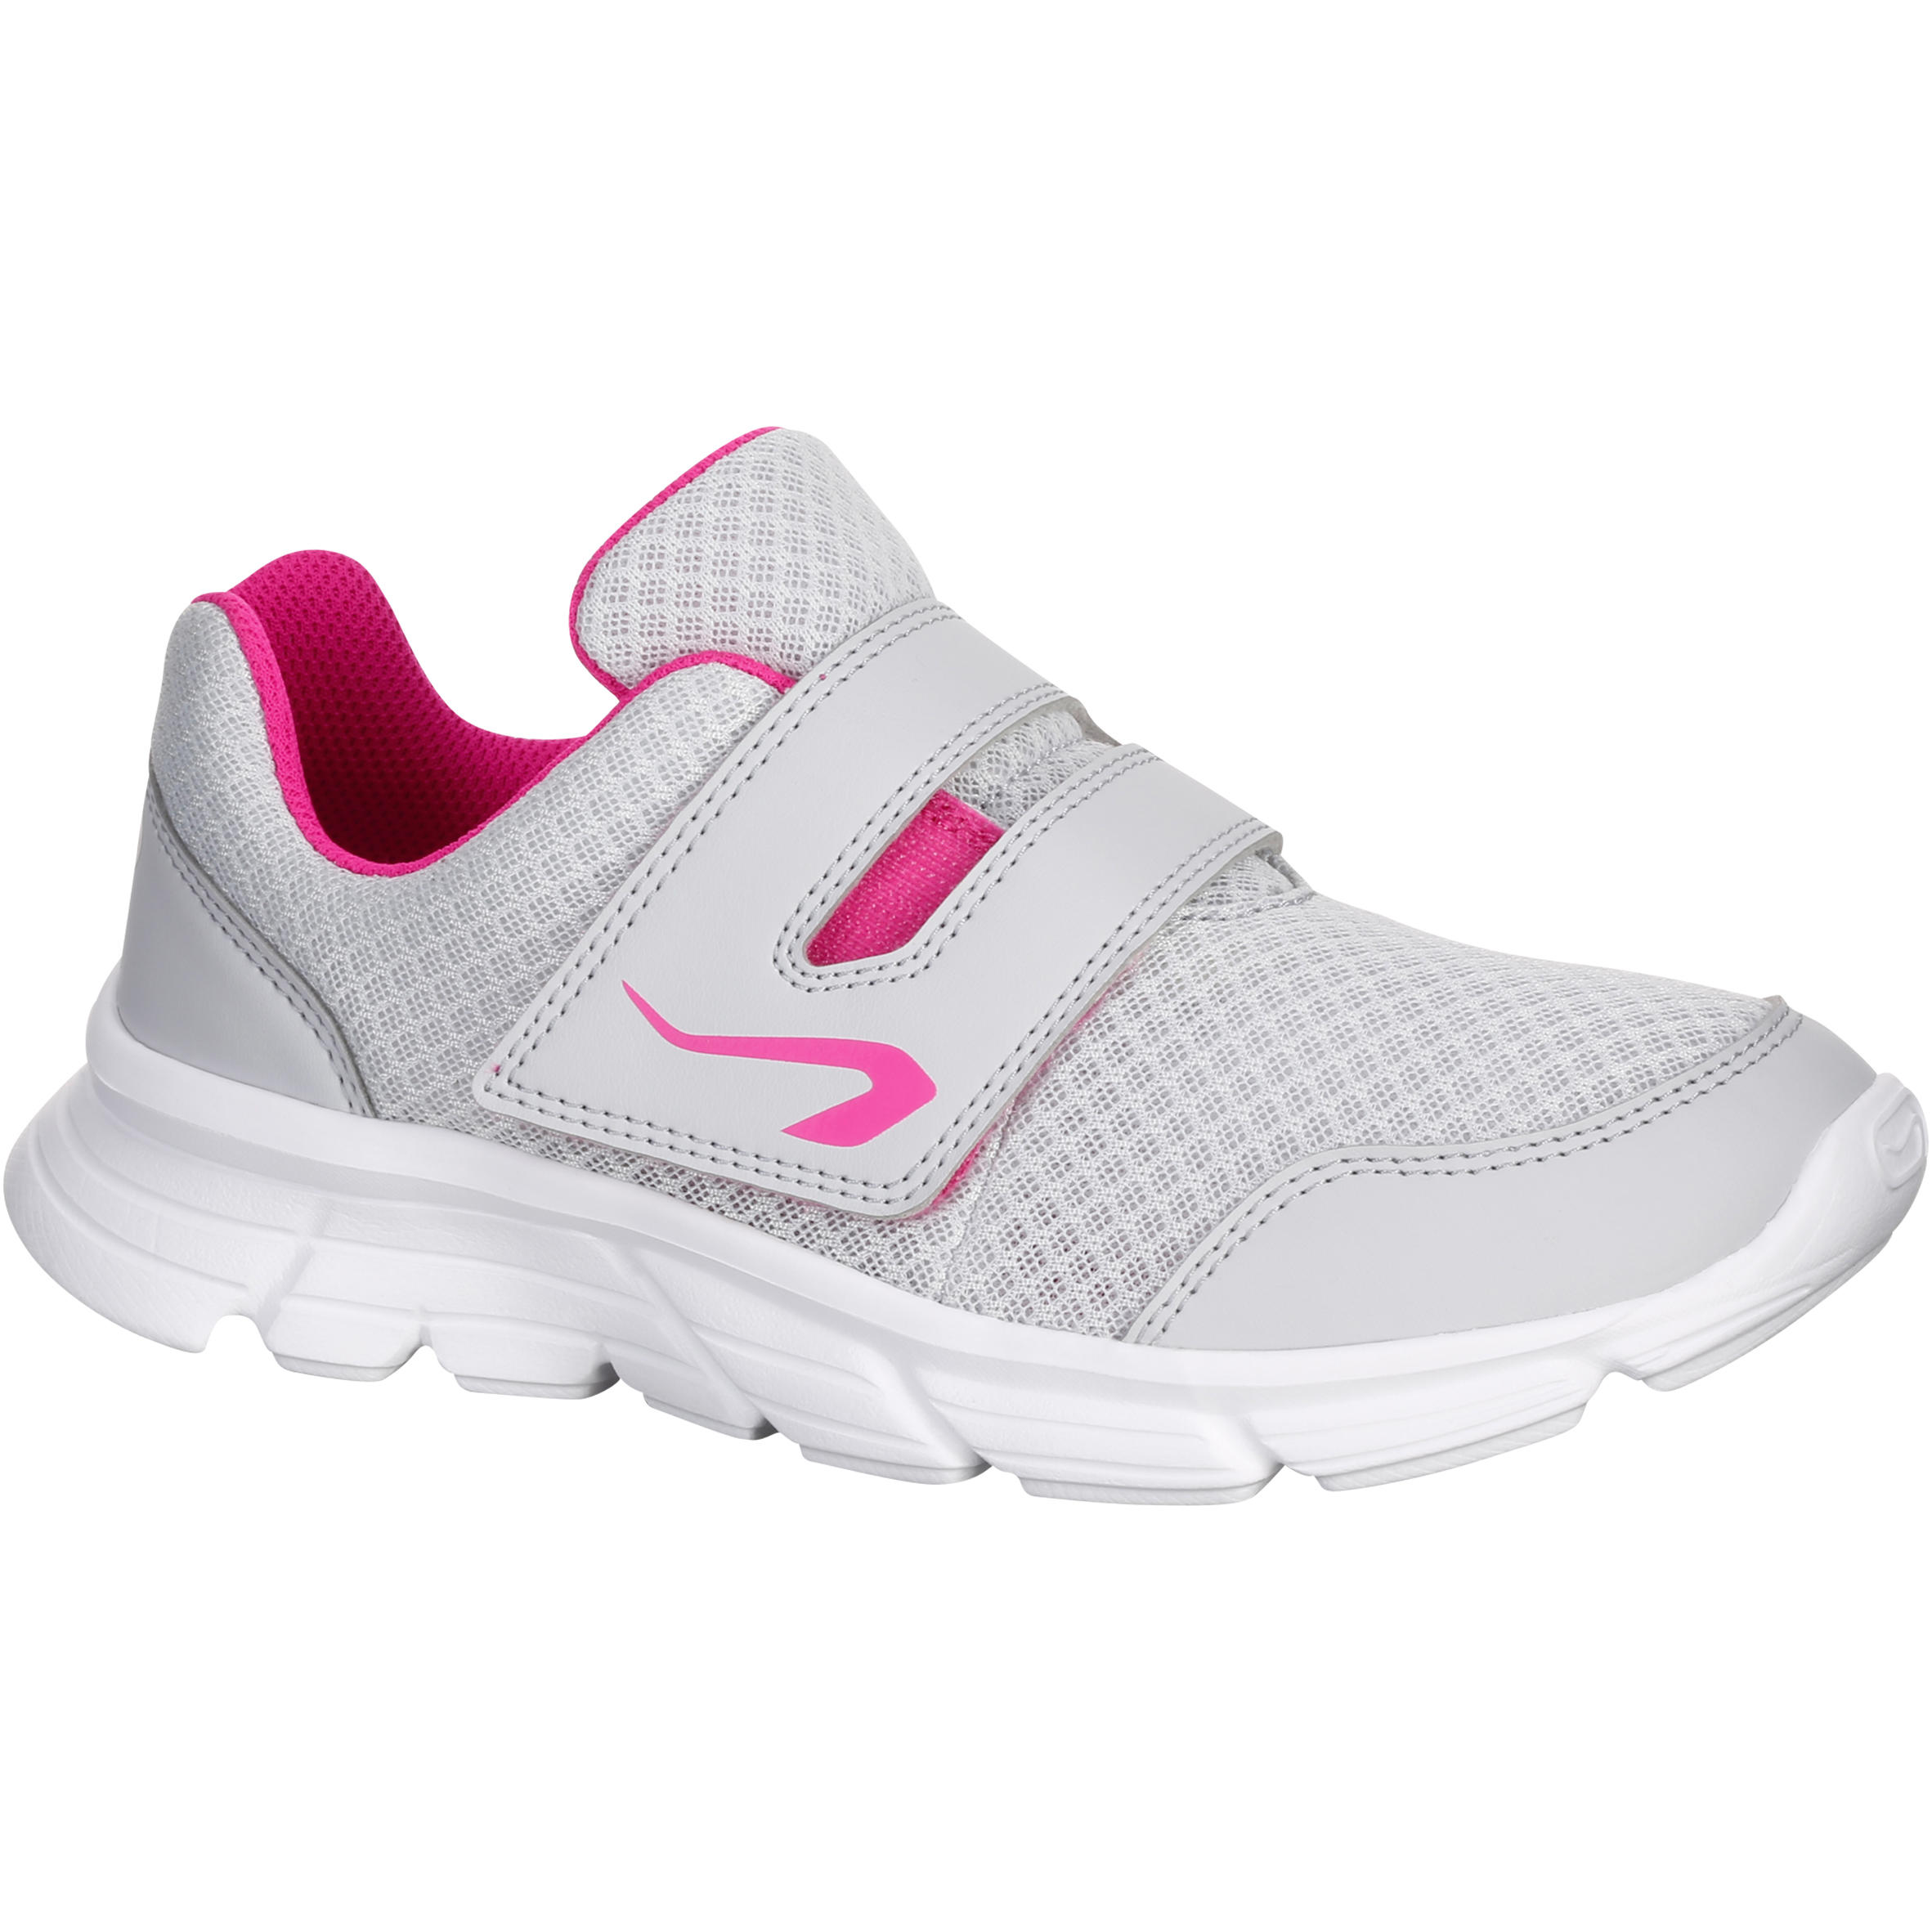 Ekiden One Children's Running Trainers - Light Grey/Pink